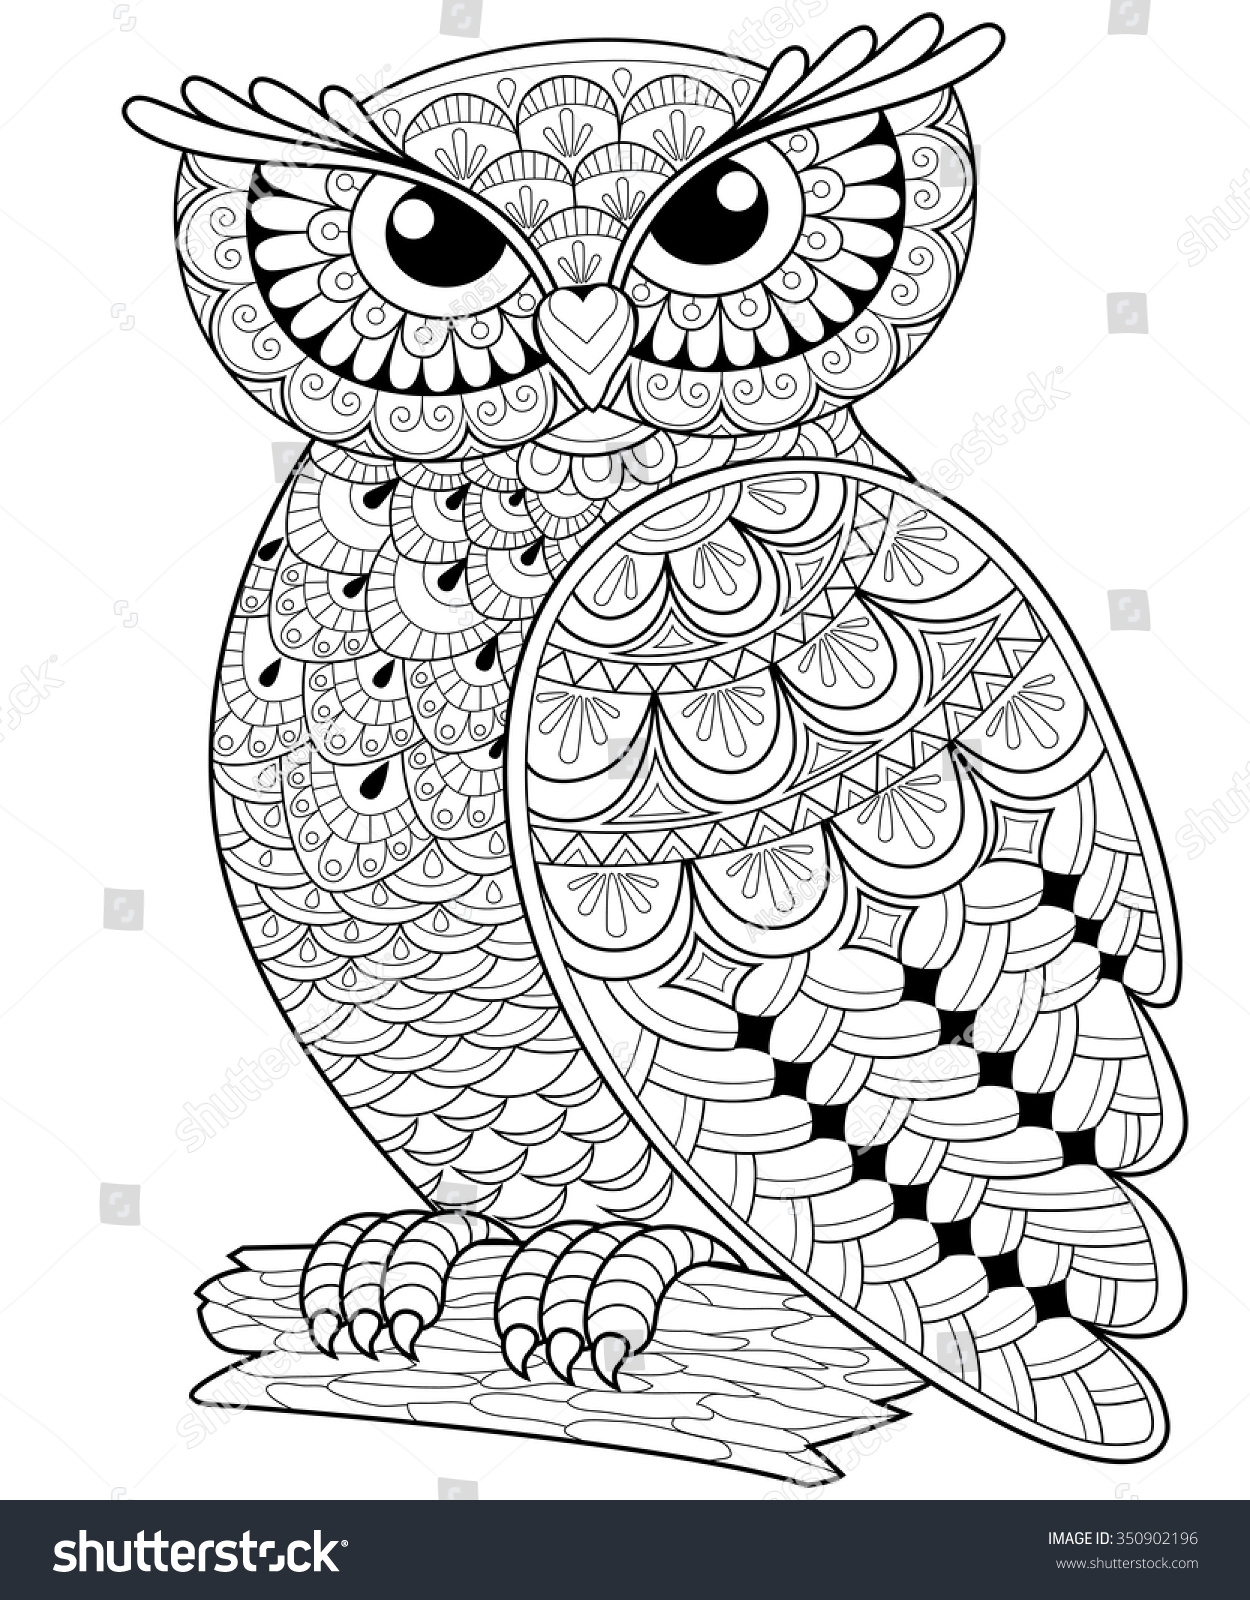 Https Www Shutterstock Com Cs Image Vector Decorative Owl Adult Antistress Coloring Page 350902196